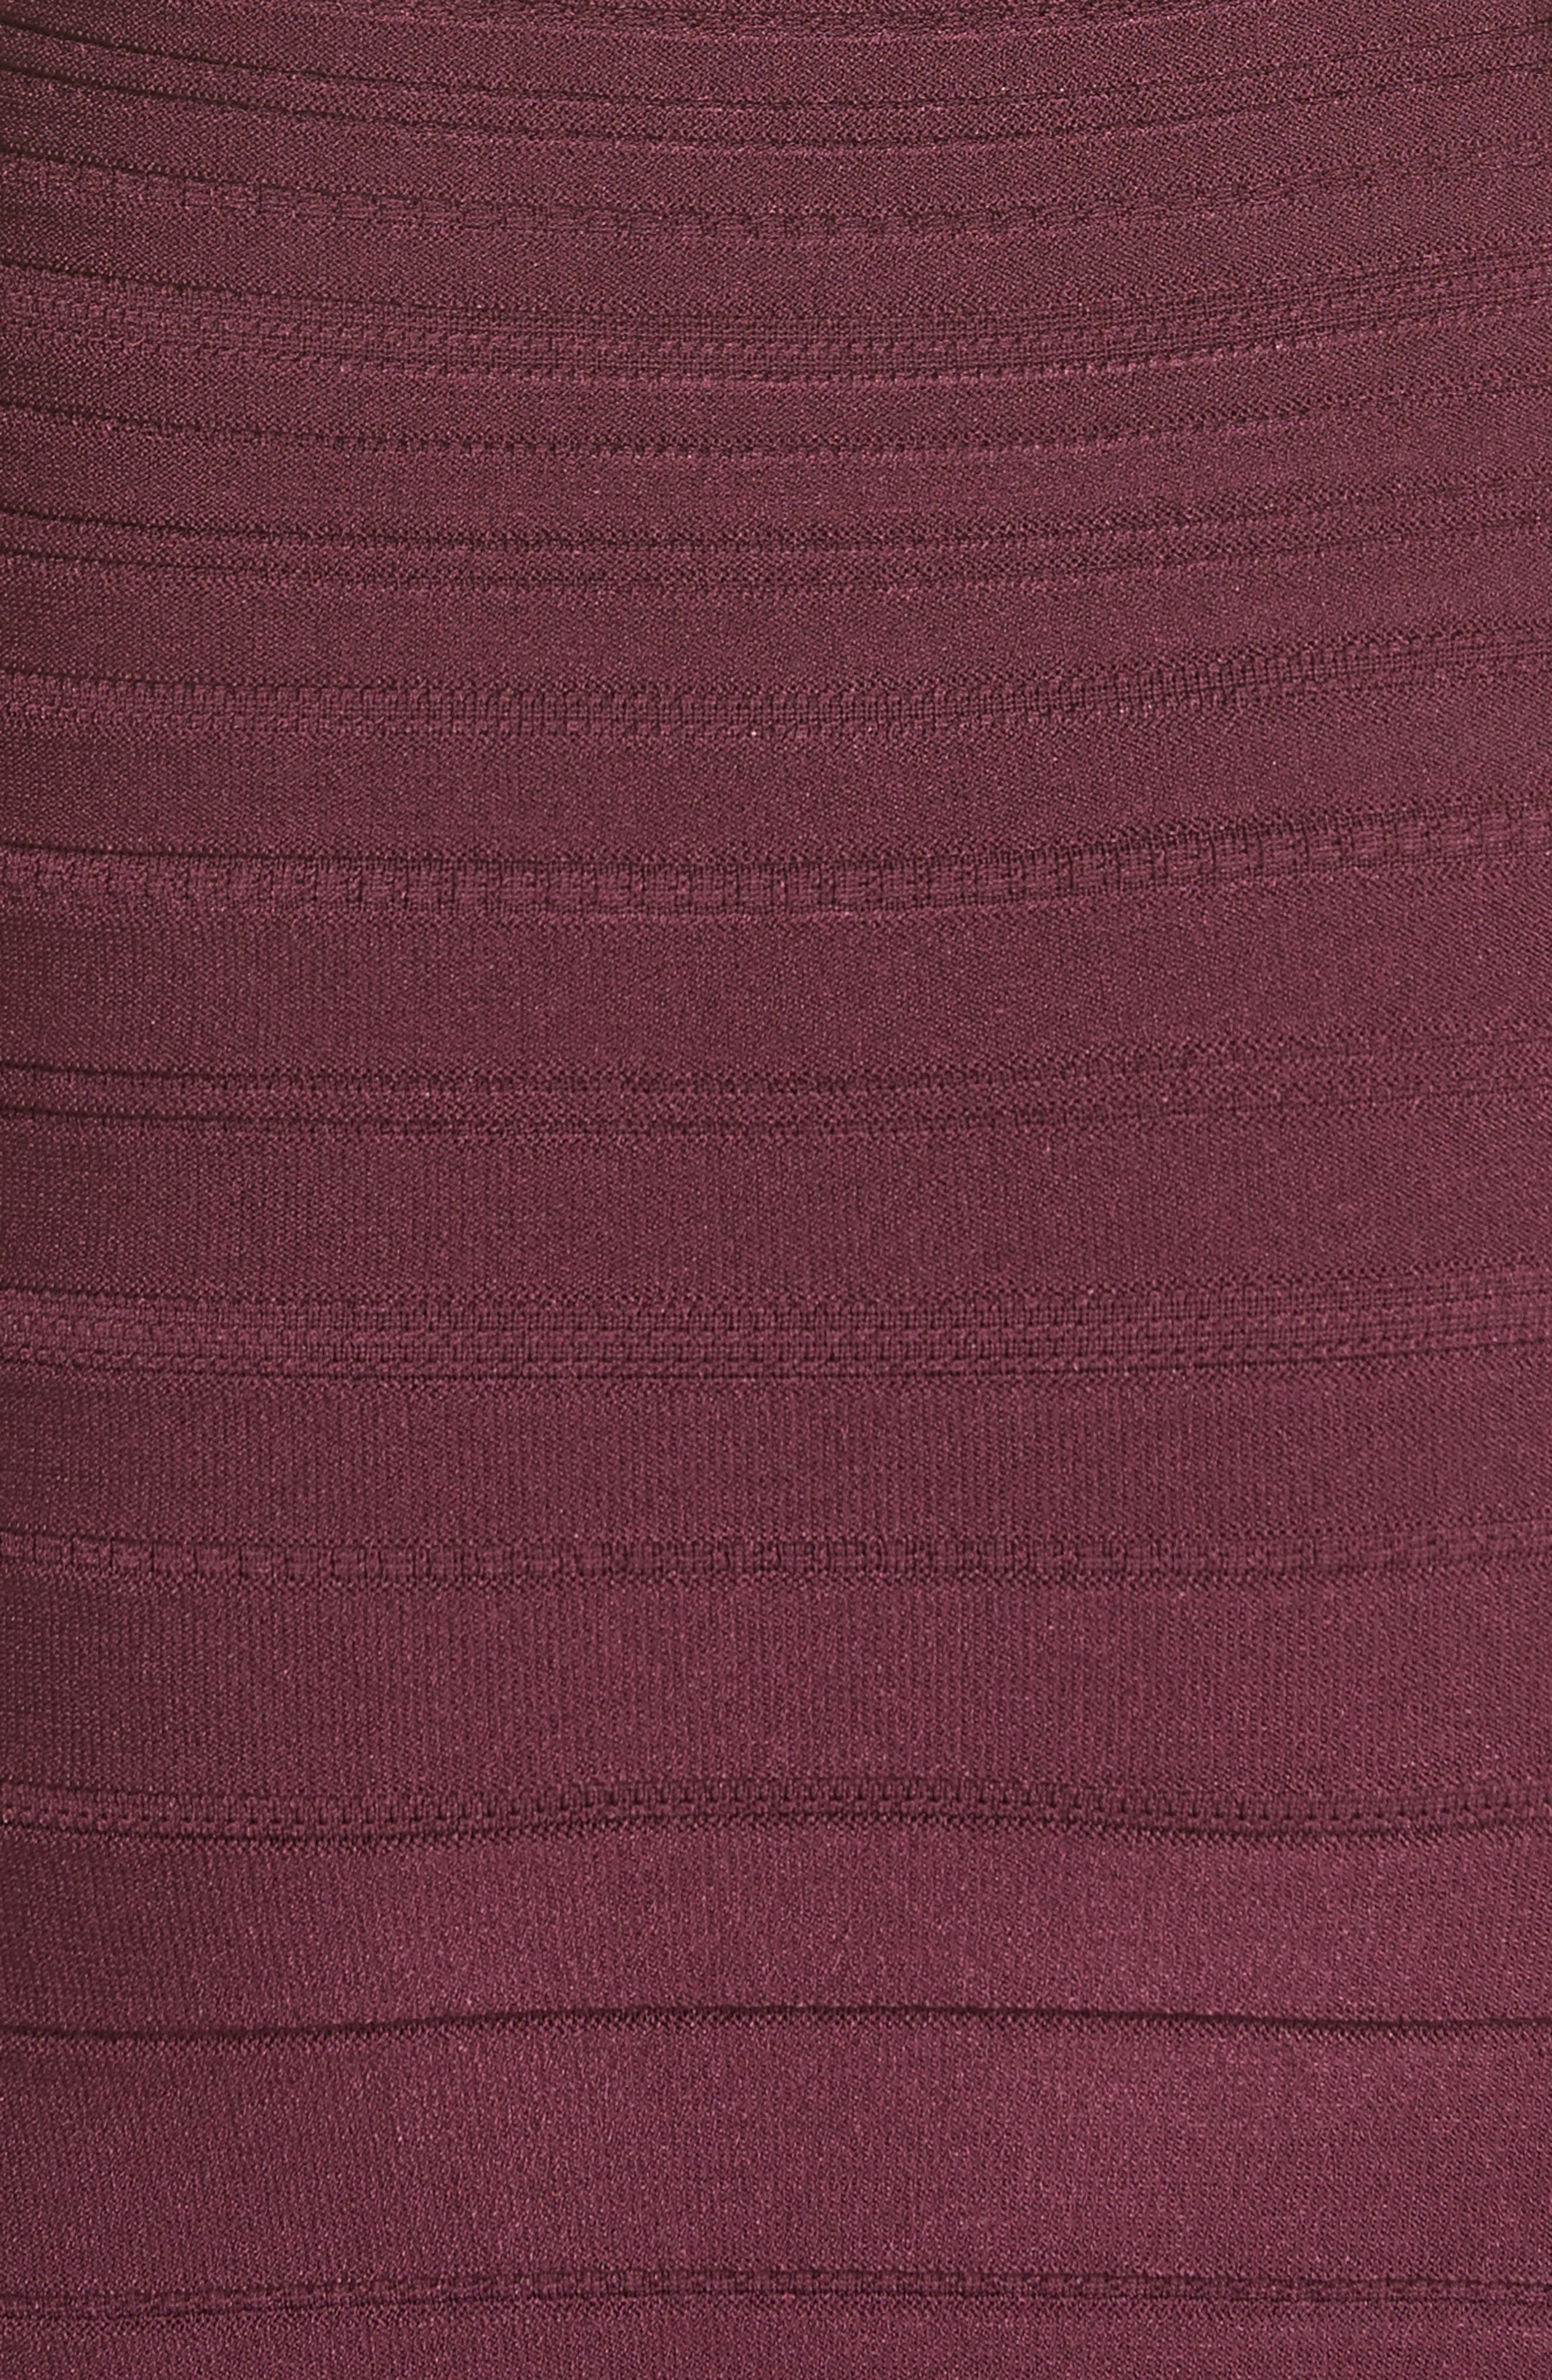 Knit High Neck Dress,                             Alternate thumbnail 3, color,                             Currant